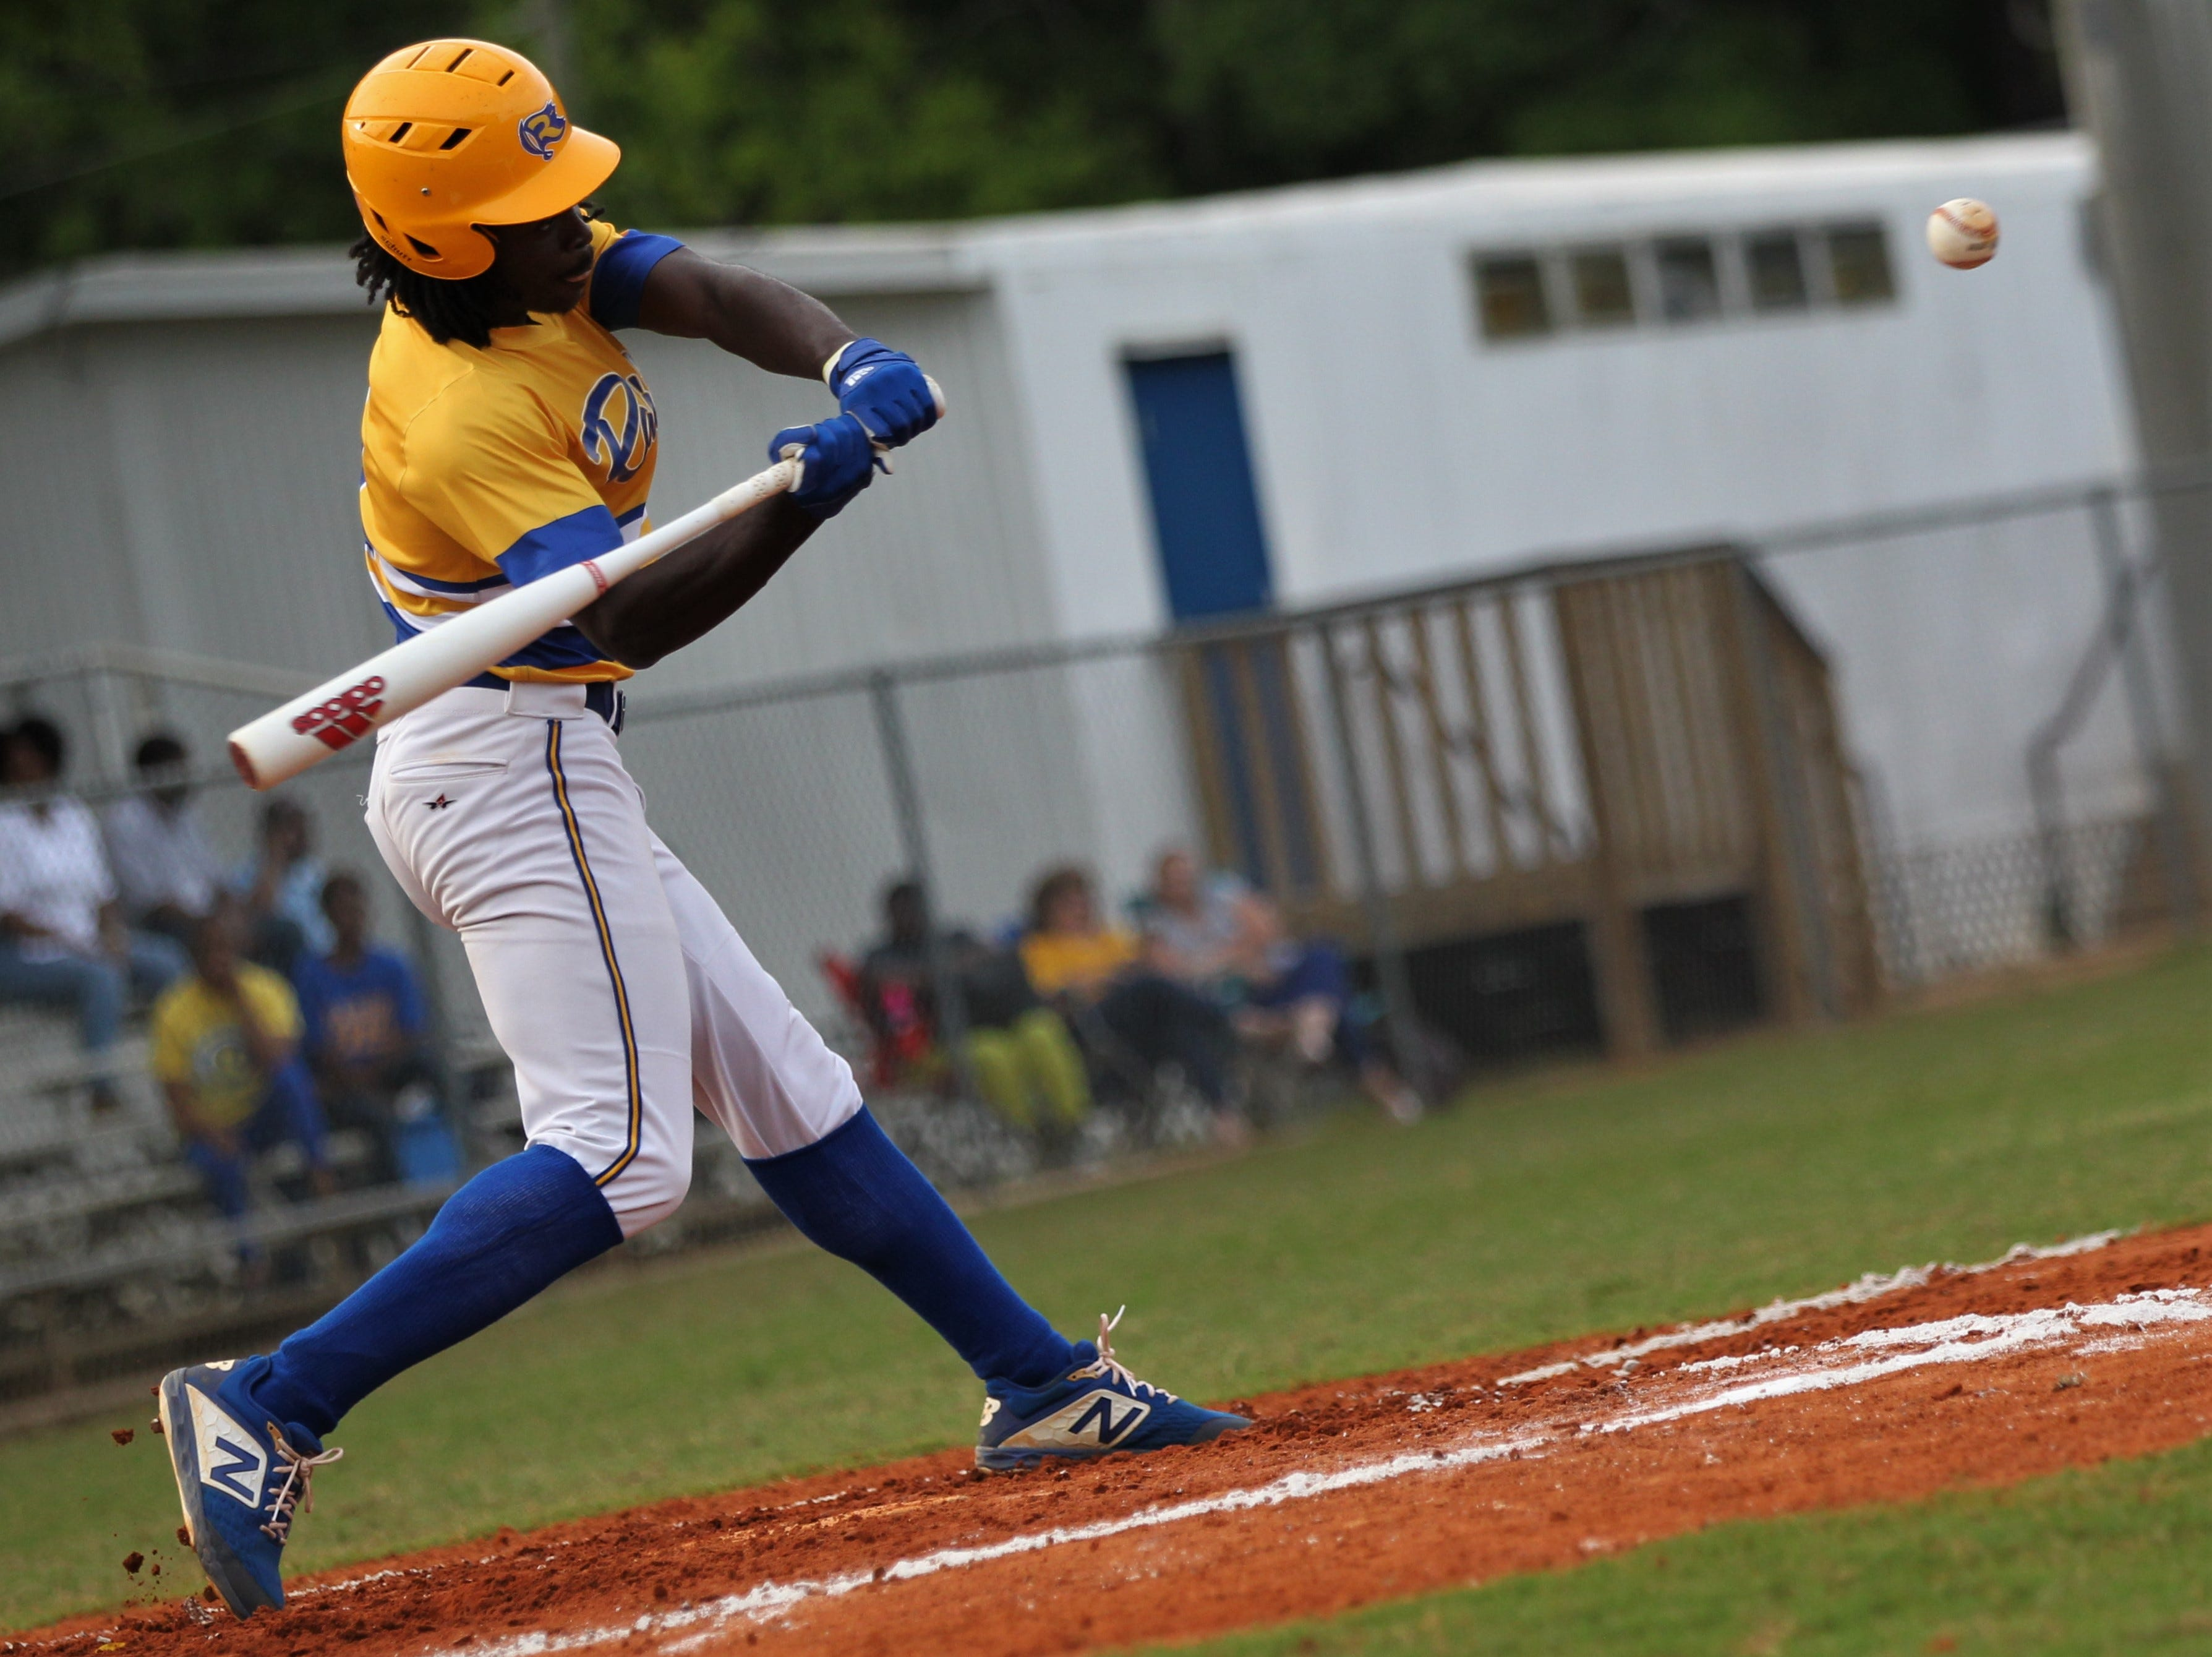 Rickards sophomore Kaleb Henry makes a home run swing as Rickards beat Gadsden County 18-0 in three innings on Friday, April 12, 2019.